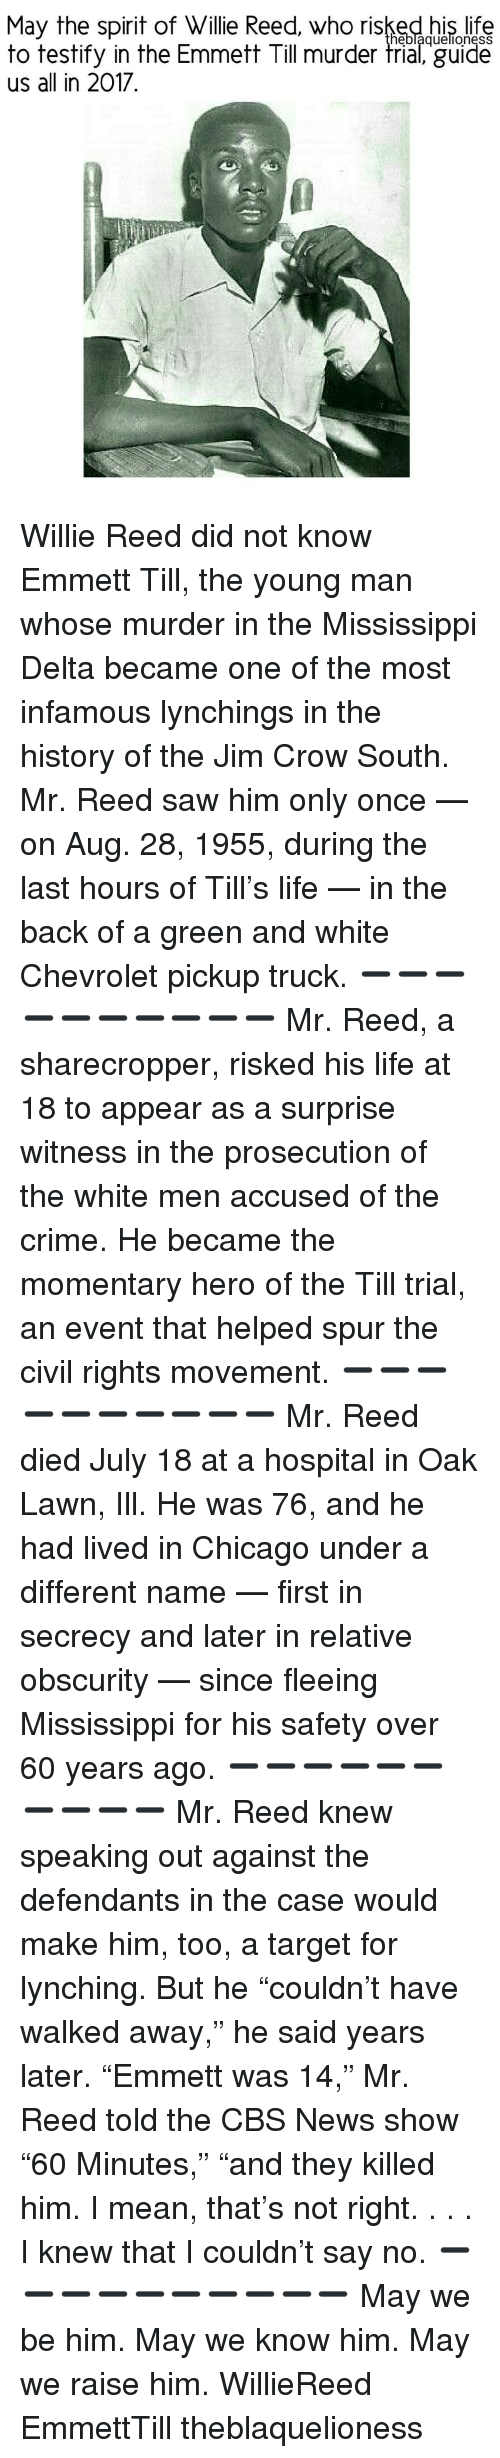 """accusation: May the spirit of Willie Reed, who risked his life  heblaquellonesS  to testify in the Emmett Till murder trial, guide  us all in 2017 Willie Reed did not know Emmett Till, the young man whose murder in the Mississippi Delta became one of the most infamous lynchings in the history of the Jim Crow South. Mr. Reed saw him only once — on Aug. 28, 1955, during the last hours of Till's life — in the back of a green and white Chevrolet pickup truck. ➖➖➖➖➖➖➖➖➖➖ Mr. Reed, a sharecropper, risked his life at 18 to appear as a surprise witness in the prosecution of the white men accused of the crime. He became the momentary hero of the Till trial, an event that helped spur the civil rights movement. ➖➖➖➖➖➖➖➖➖➖ Mr. Reed died July 18 at a hospital in Oak Lawn, Ill. He was 76, and he had lived in Chicago under a different name — first in secrecy and later in relative obscurity — since fleeing Mississippi for his safety over 60 years ago. ➖➖➖➖➖➖➖➖➖➖ Mr. Reed knew speaking out against the defendants in the case would make him, too, a target for lynching. But he """"couldn't have walked away,"""" he said years later. """"Emmett was 14,"""" Mr. Reed told the CBS News show """"60 Minutes,"""" """"and they killed him. I mean, that's not right. . . . I knew that I couldn't say no. ➖➖➖➖➖➖➖➖➖➖ May we be him. May we know him. May we raise him. WillieReed EmmettTill theblaquelioness"""